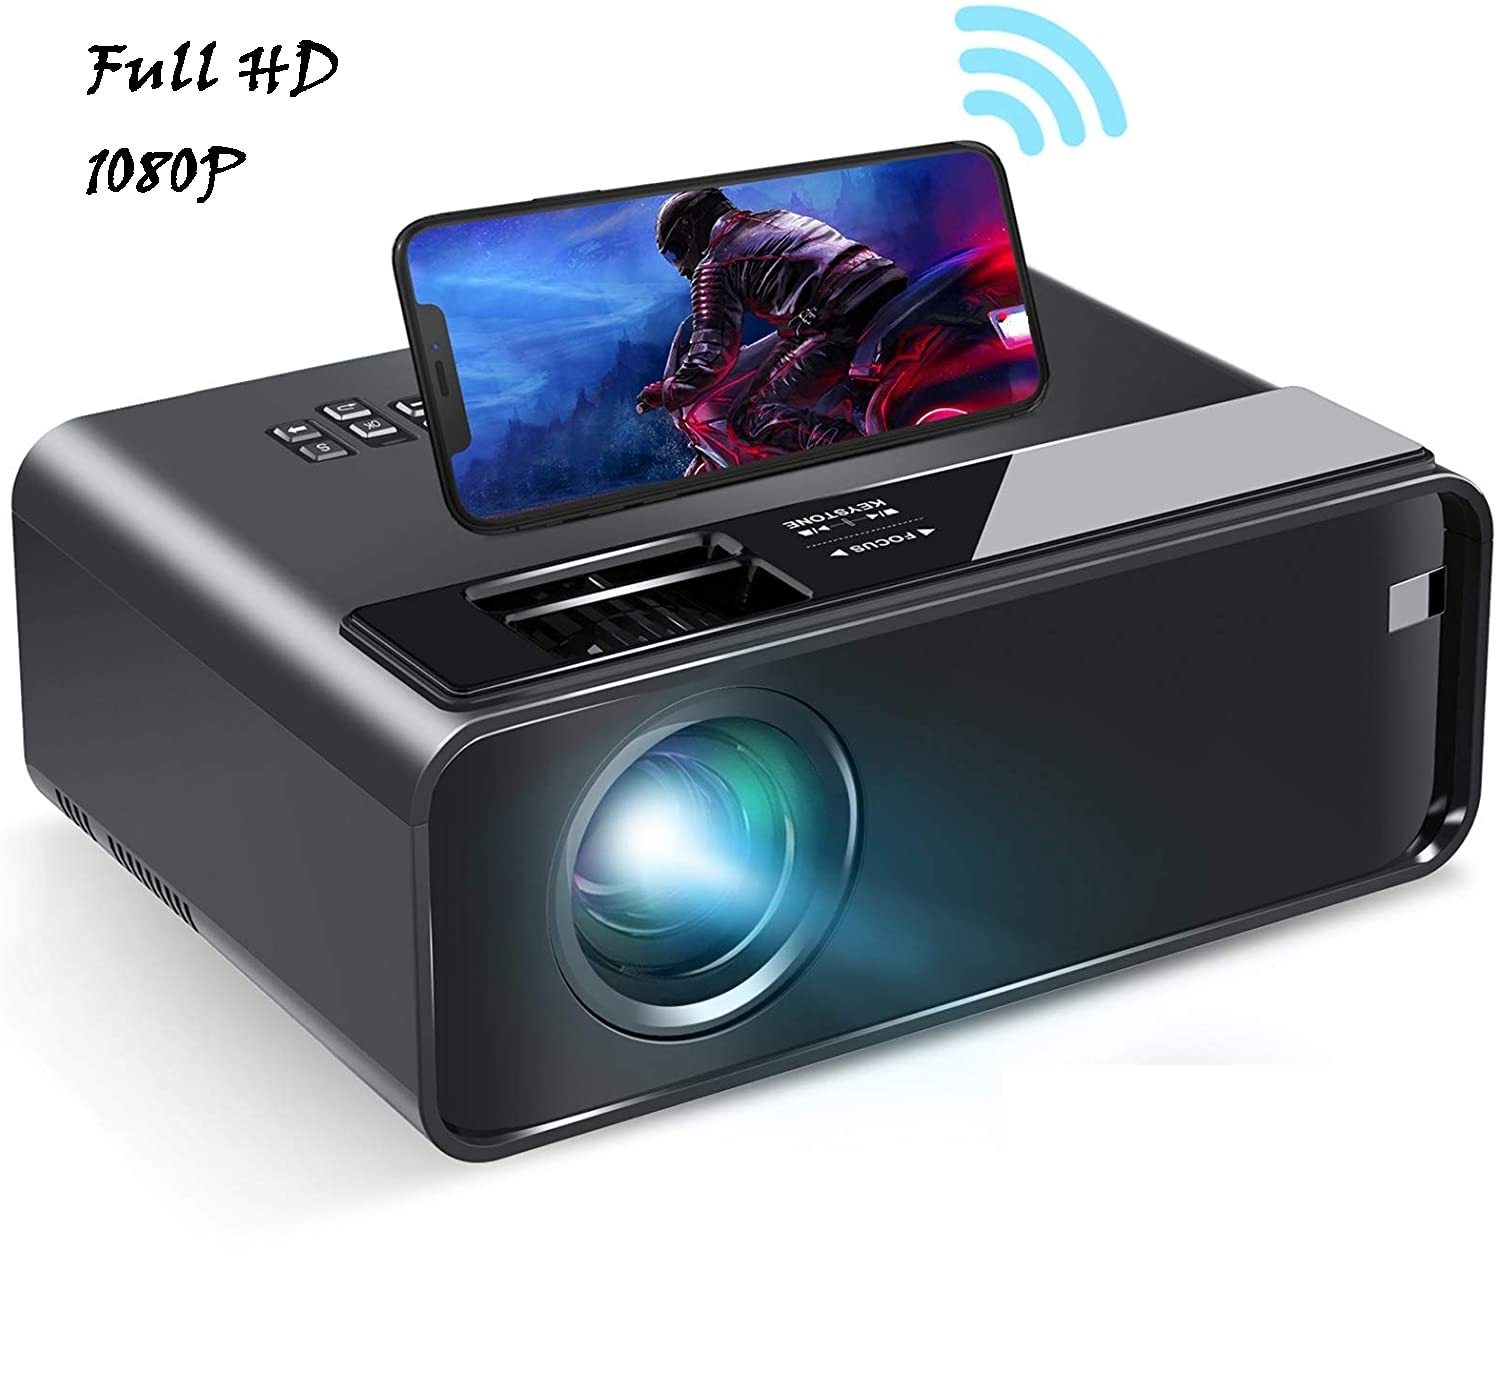 Mini Wifi LED Projector 1080p/720p Support VGA/USB/HDMI 3D Home Video Projector With Remote Control For Android iPhone Xbox/PS4